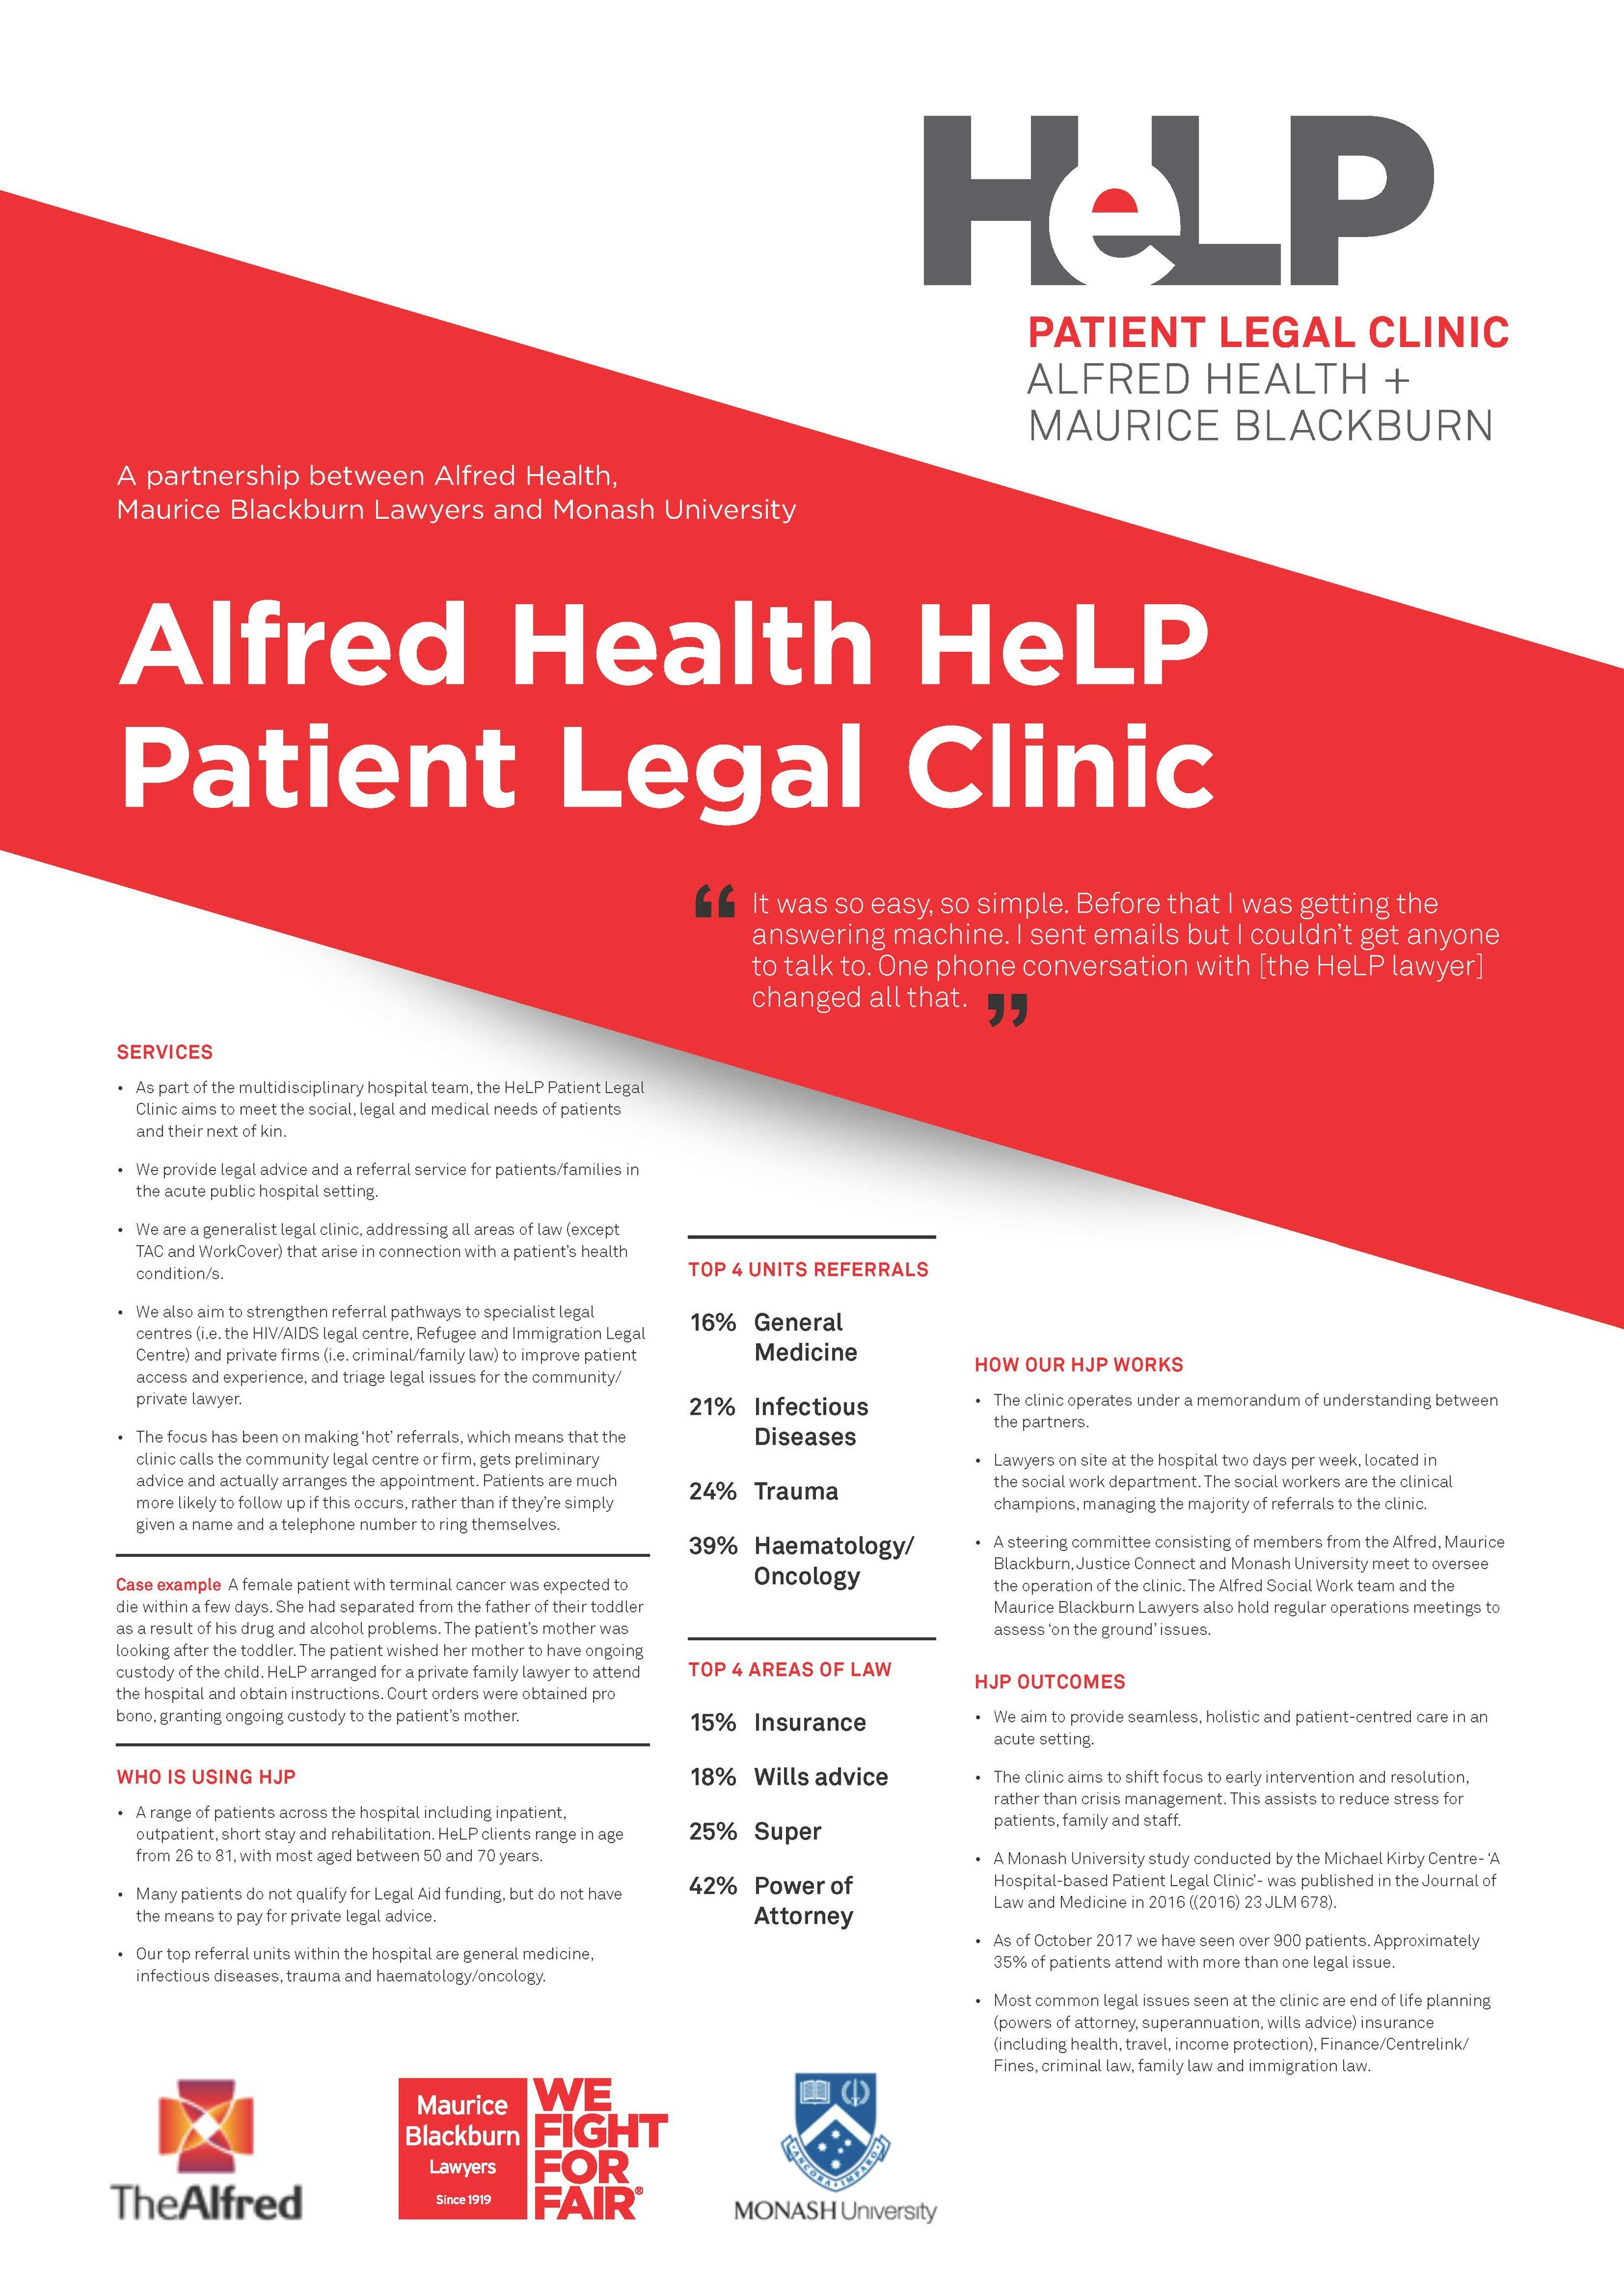 HJP Poster - HeLP - Patient Legal Clinic - permission received.jpg